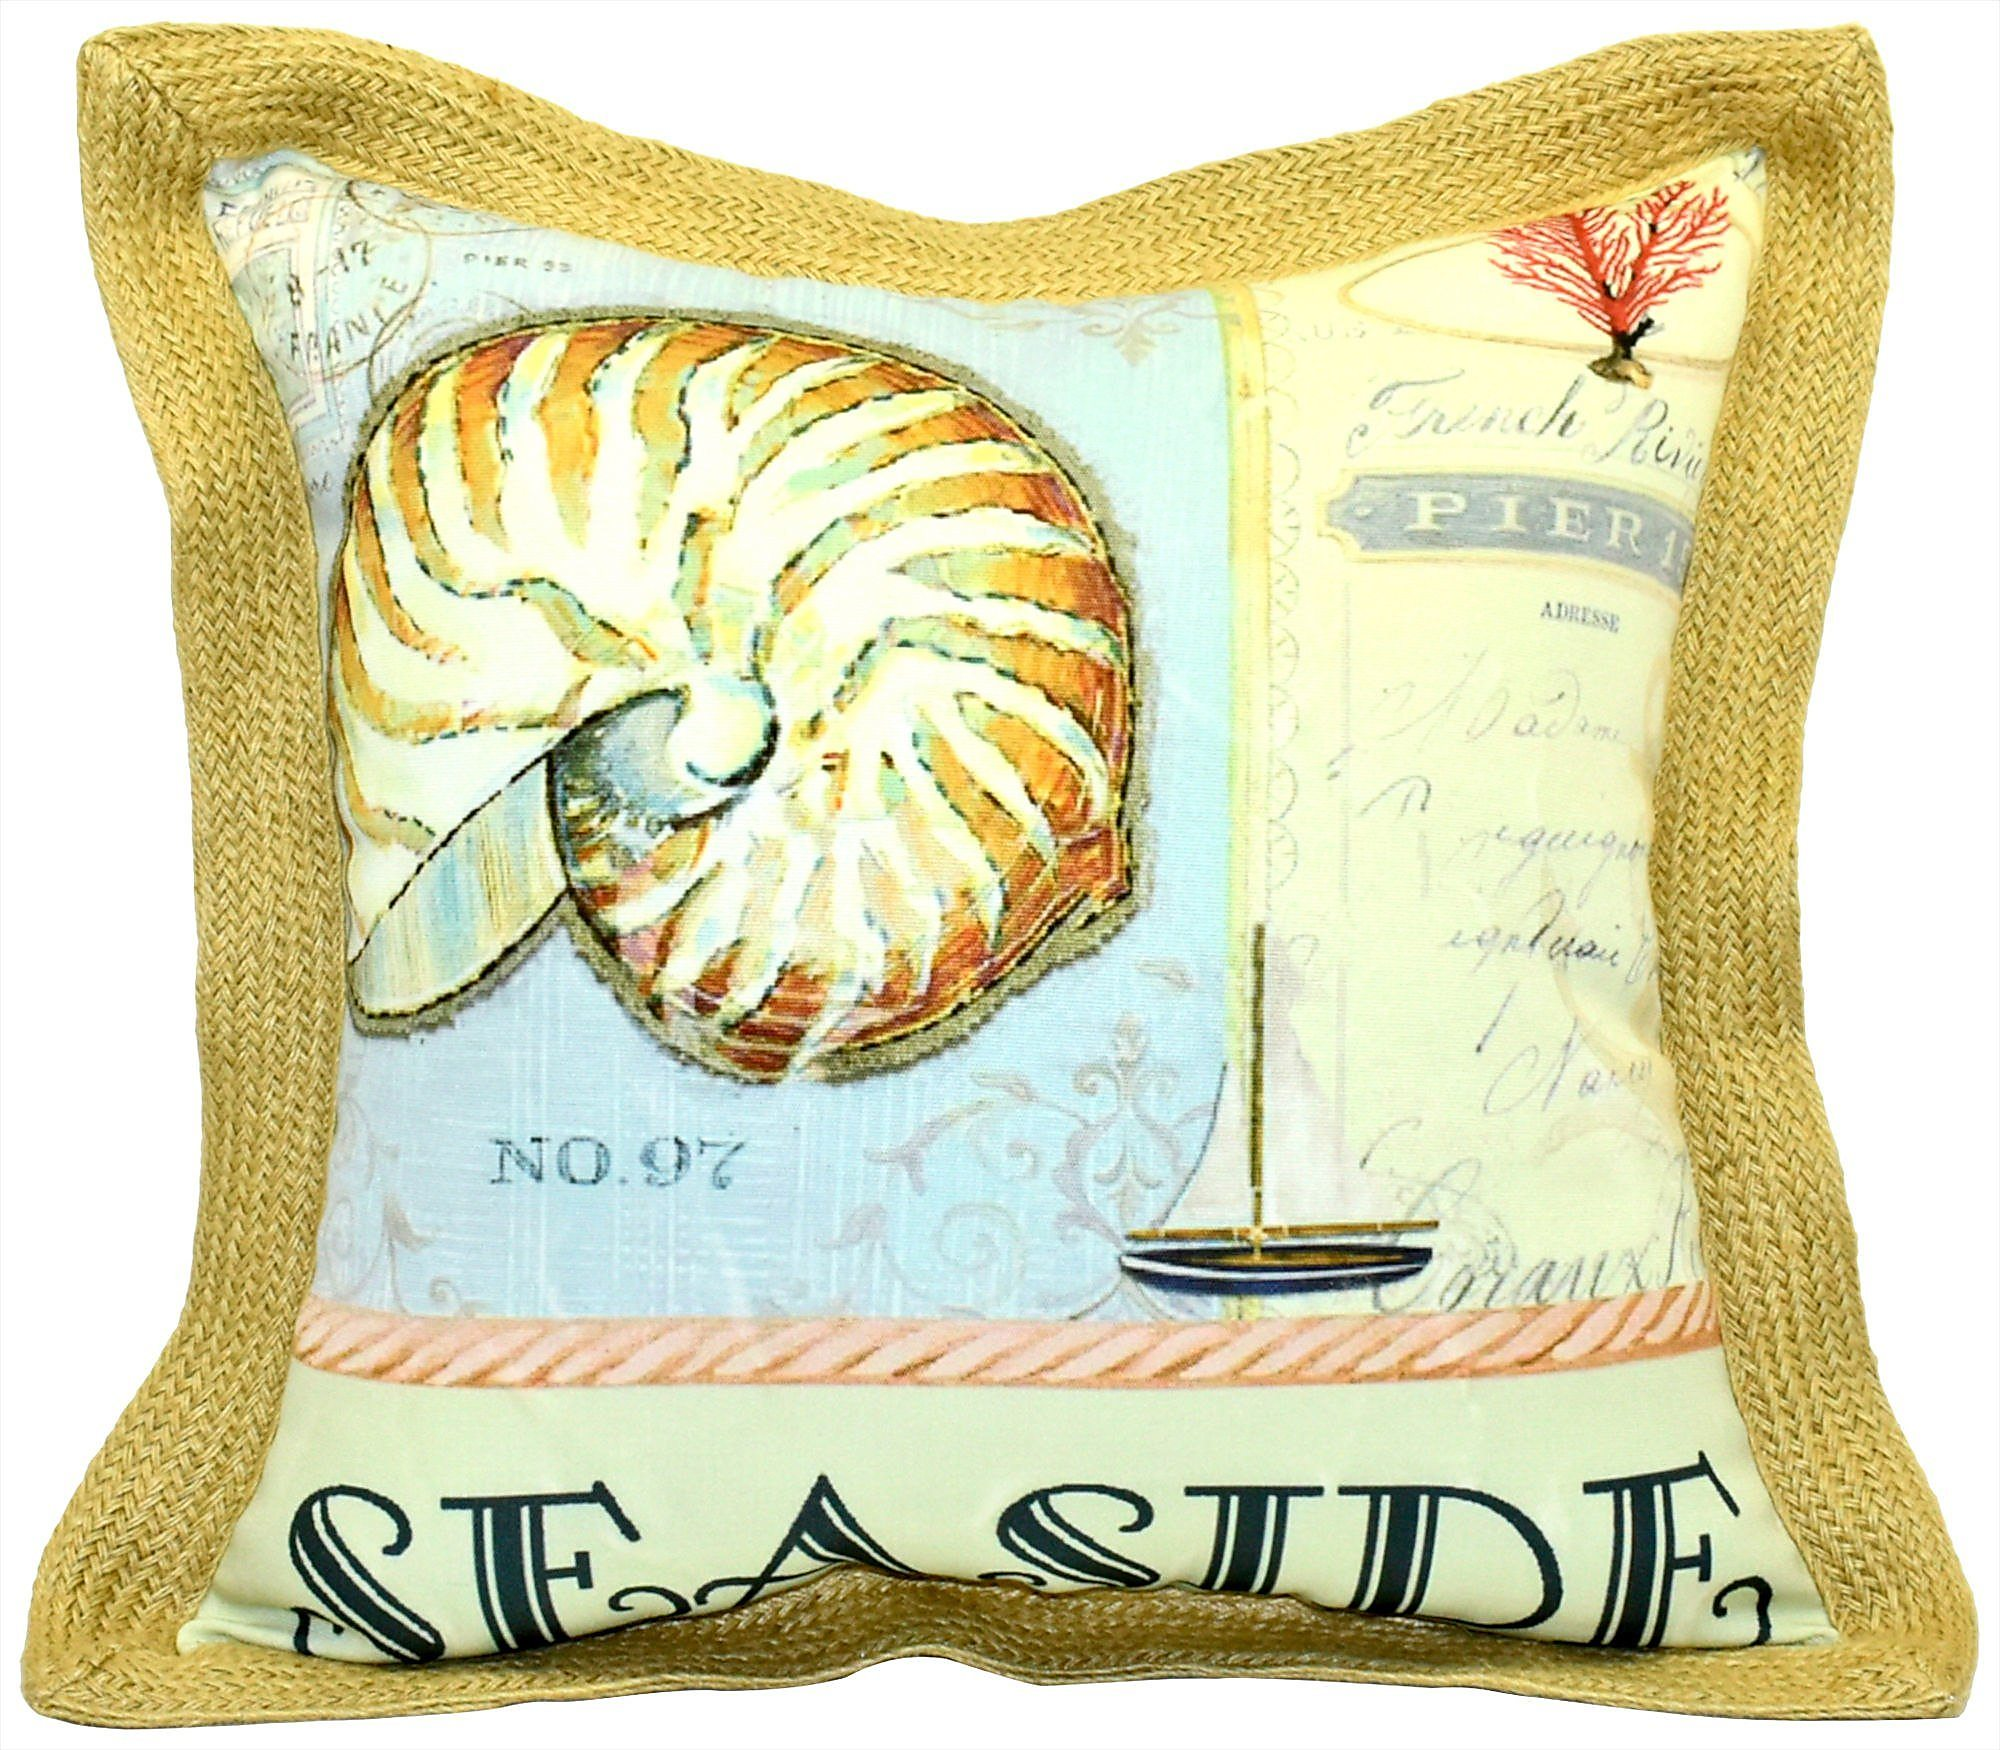 Newport Seaside Outdoor Decorative Pillow One Size Yellow Blue